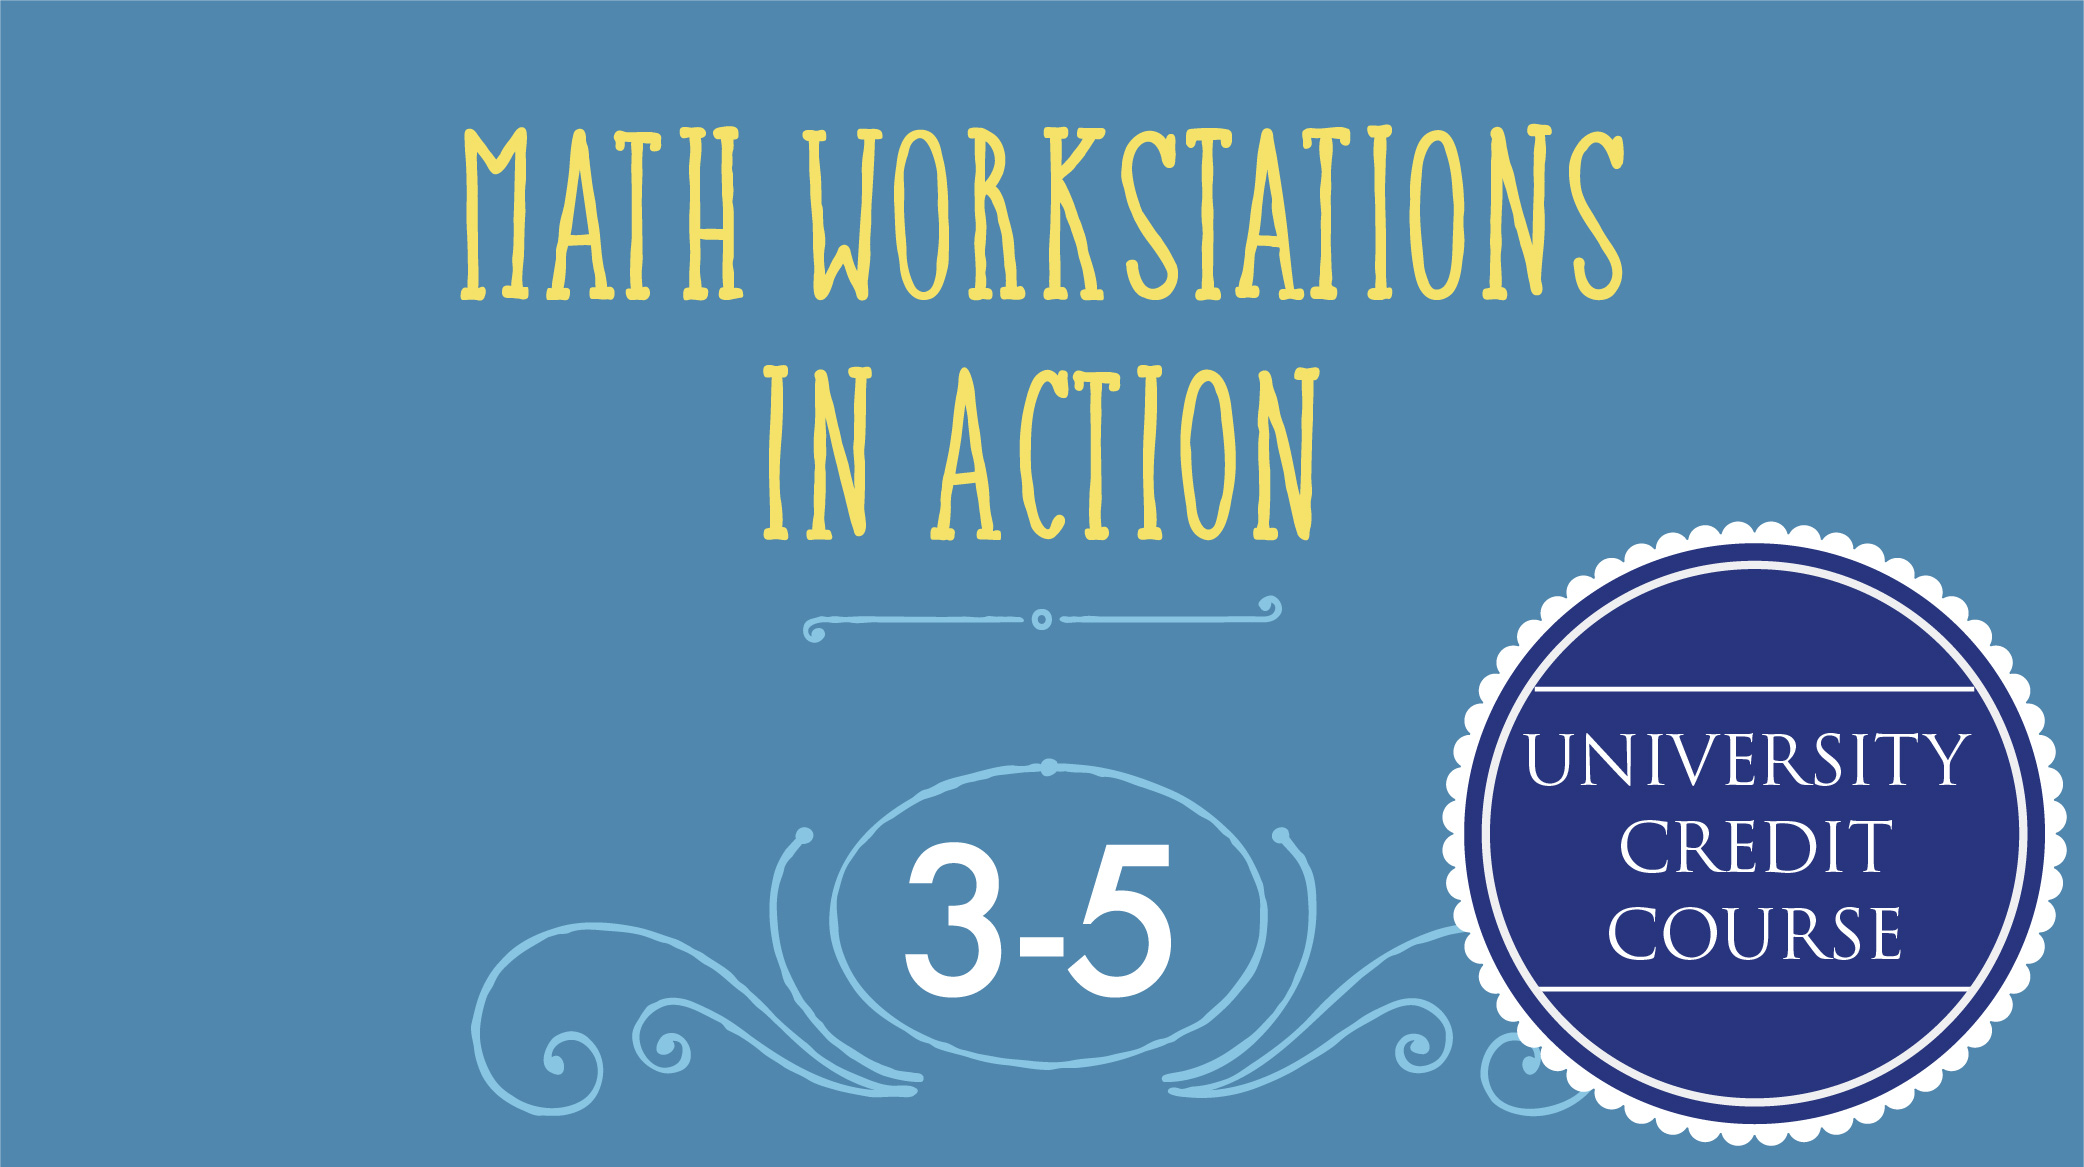 Class-title-cards_Math workstations in action 3-5 UC